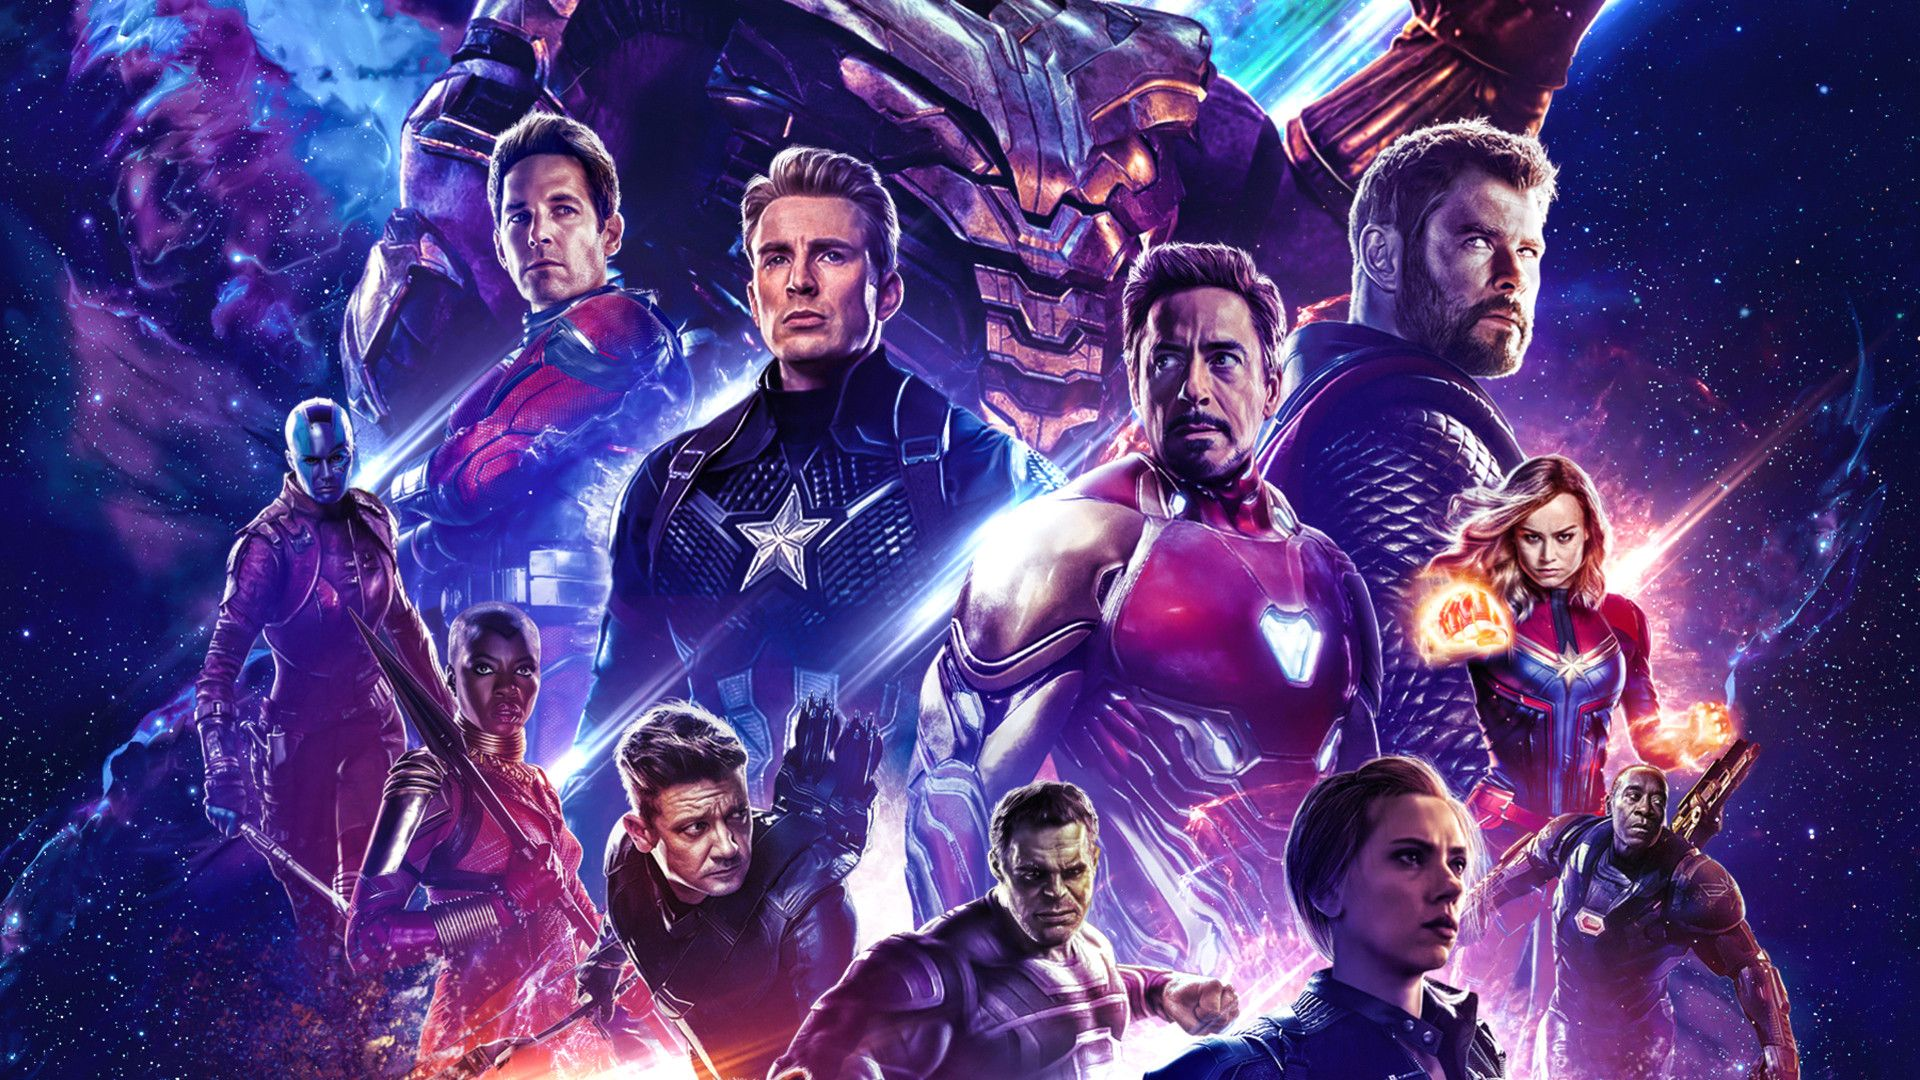 Awesome Avengers Endgame Amp Infinity War Wallpapers 1920 X 1080p Avengers Wallpaper Avengers Marvel Cinematic Universe Movies